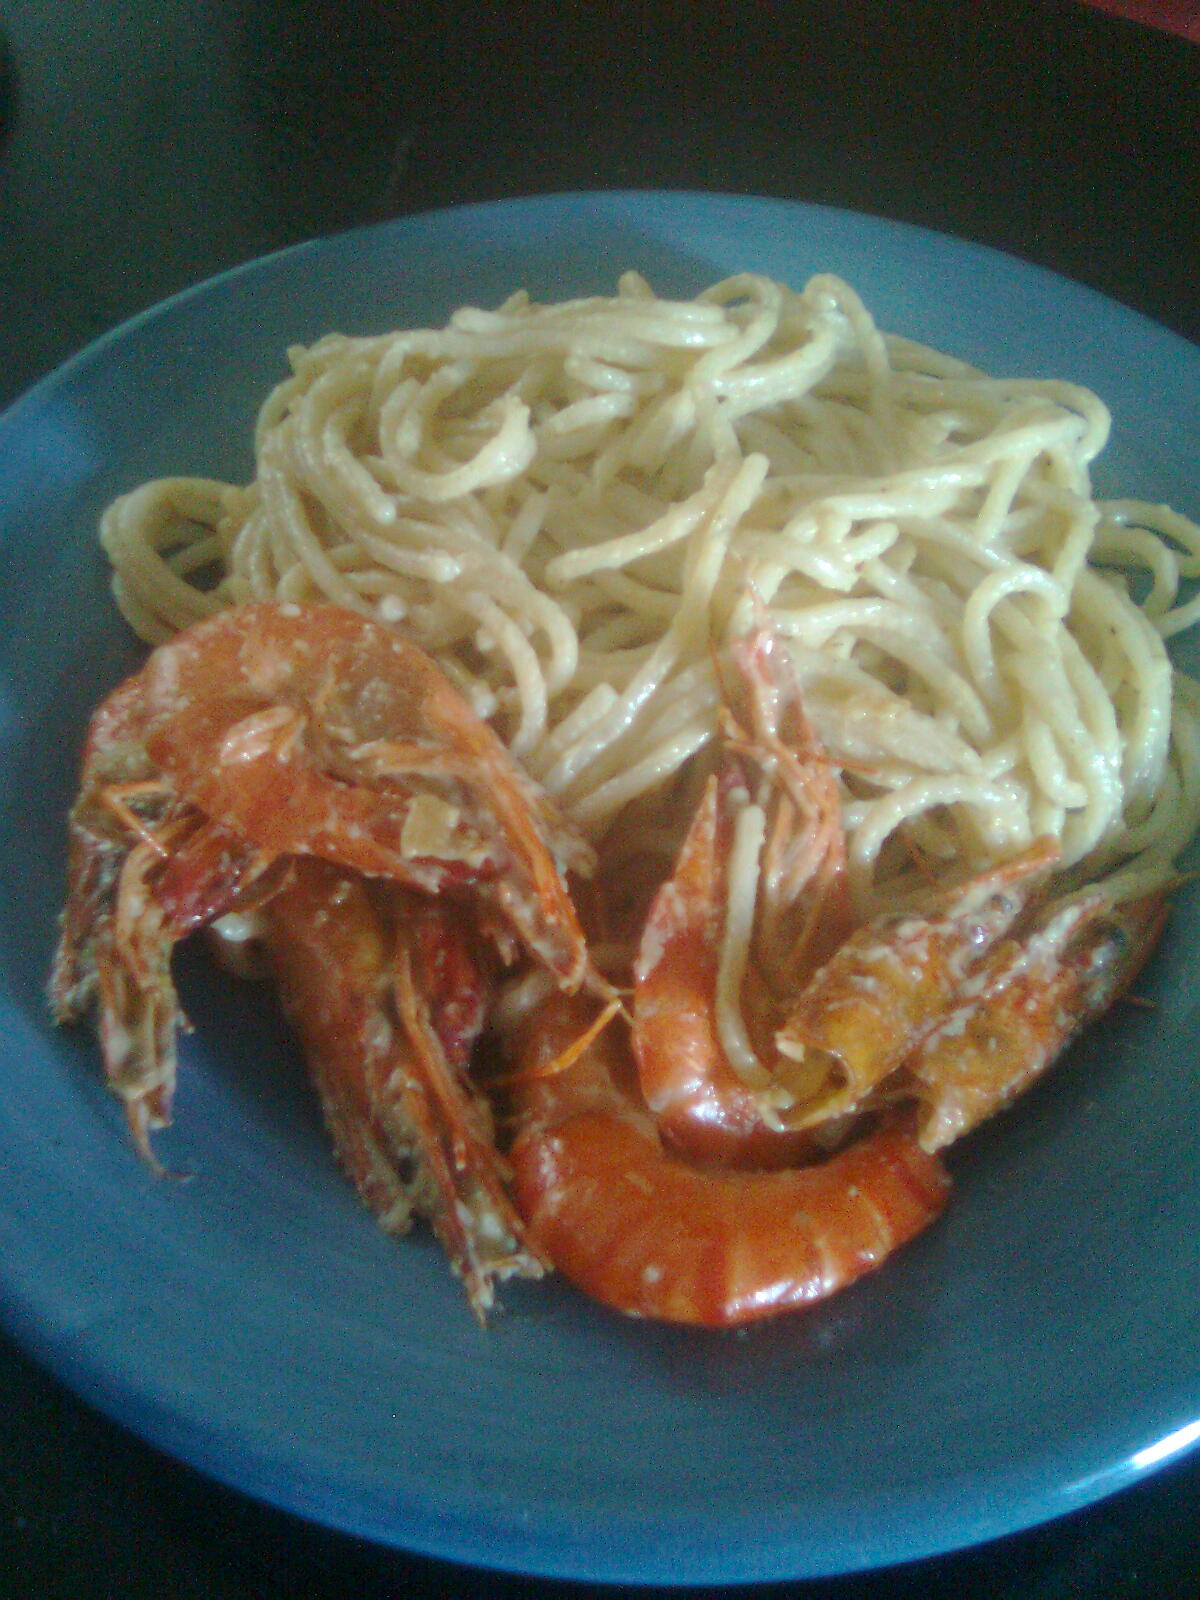 Spaghetti with shrimp and coconut milk